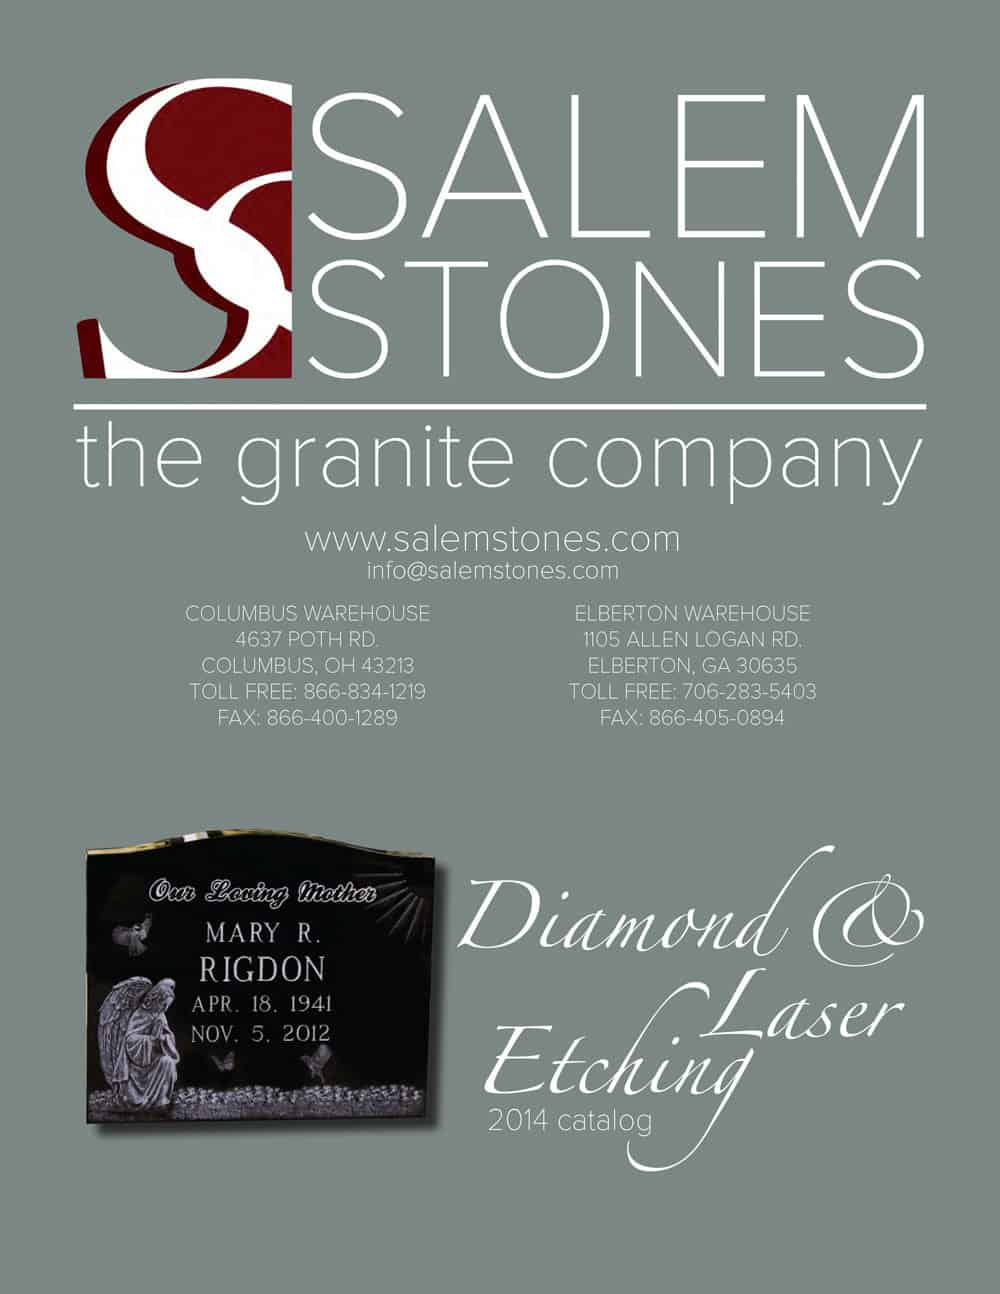 Salem Stones Engraving Catalog